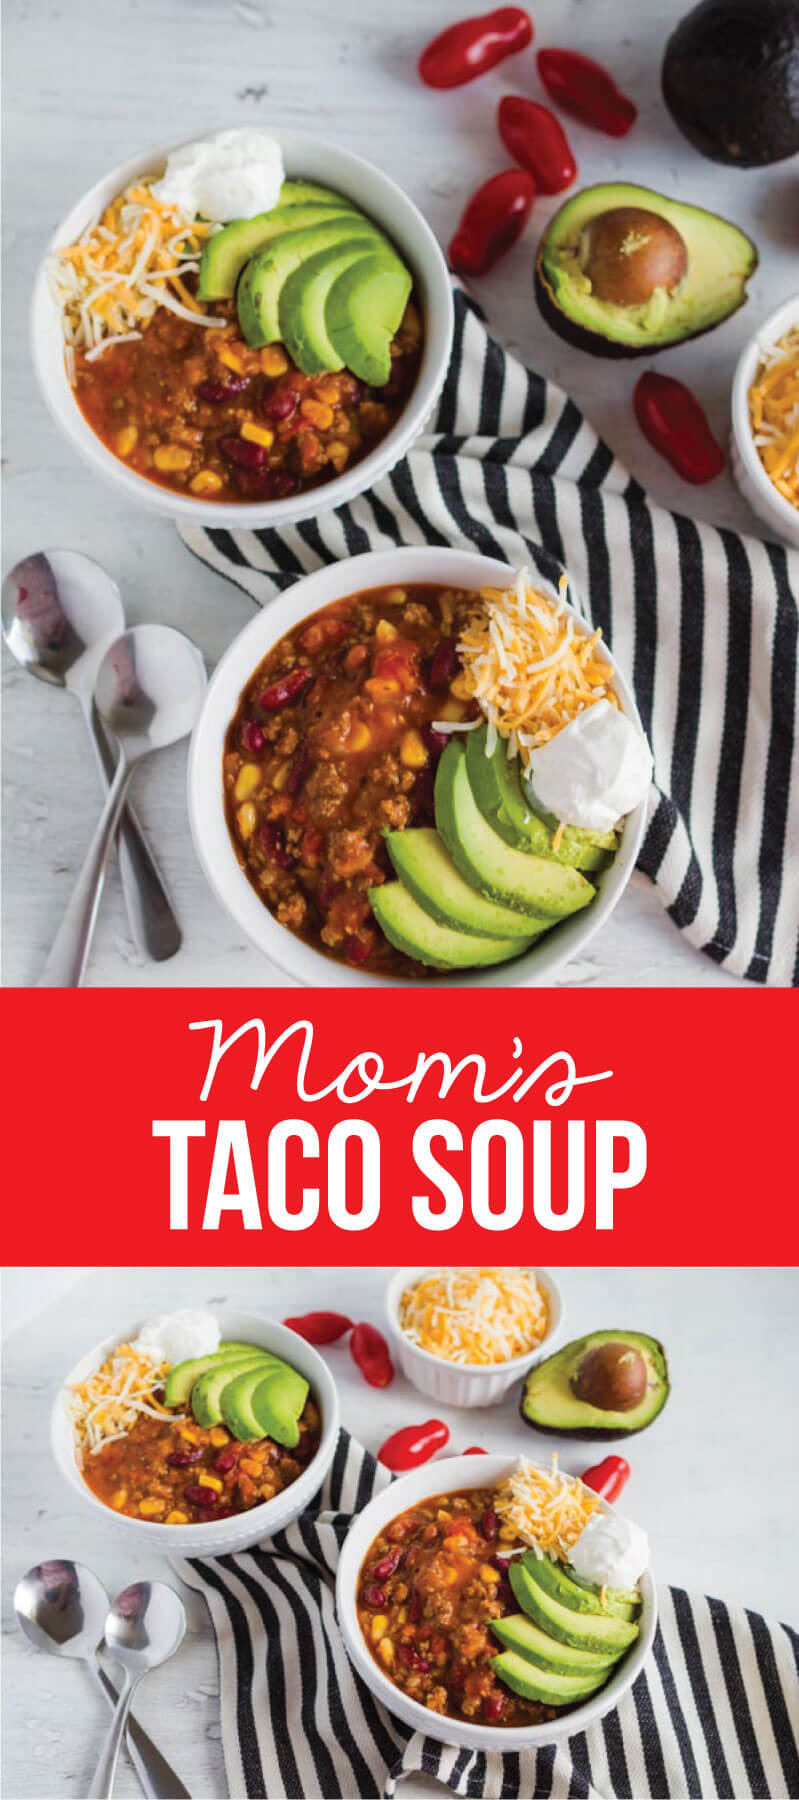 Mom's Taco Soup - a super easy main dish recipe where you throw all the ingredients in the pot and let it simmer via www.thirtyhandmadedays.com